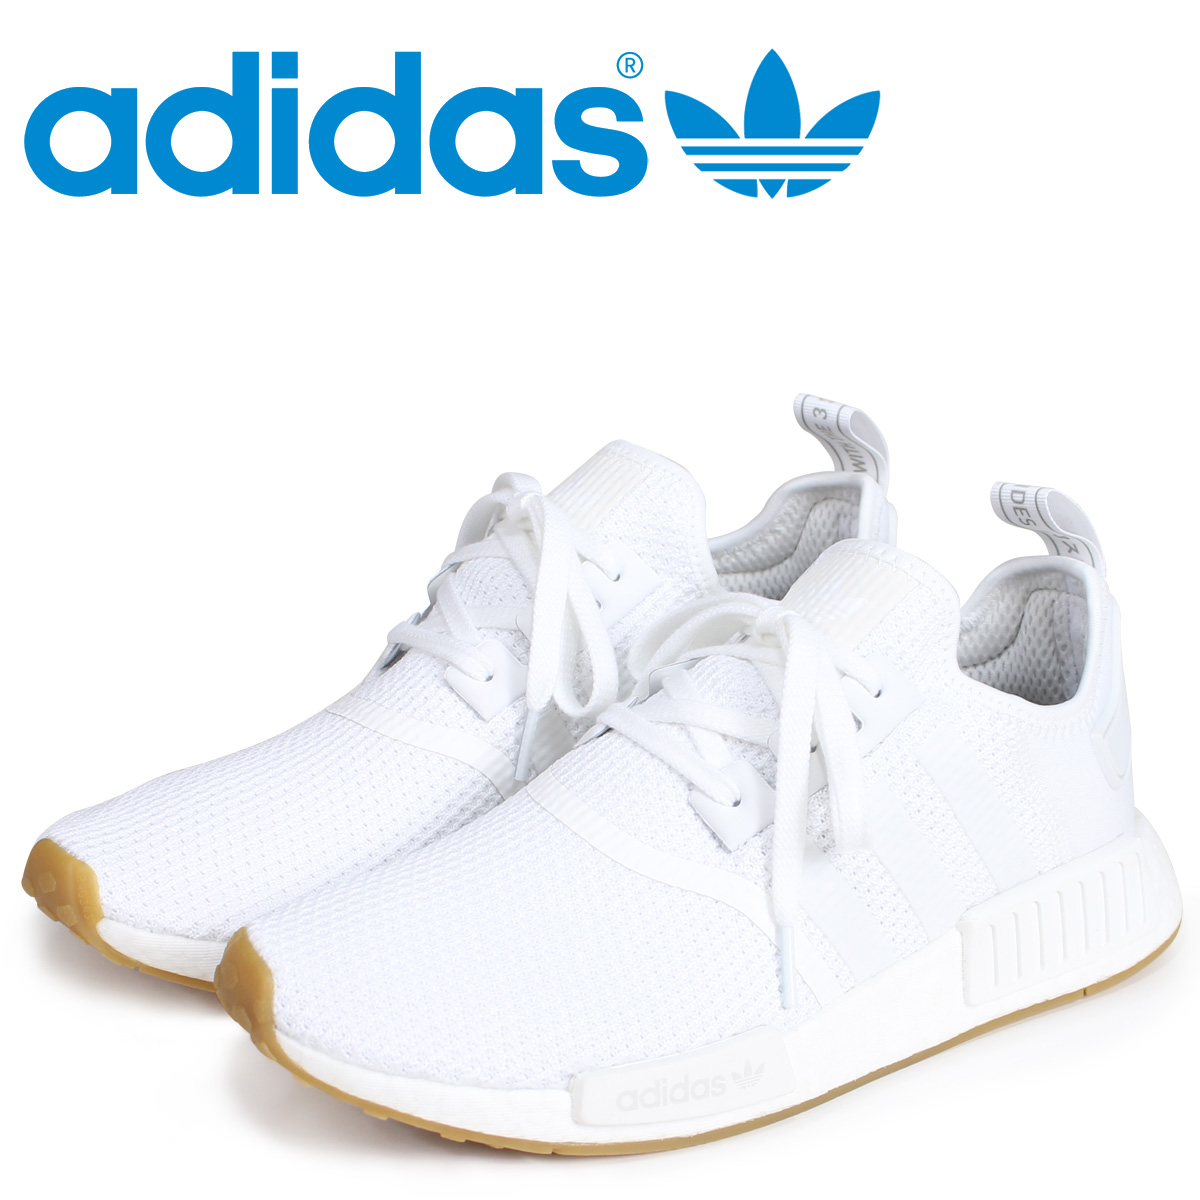 adidas Originals NMD R1 Adidas originals sneakers N M D nomad men D96635 white white